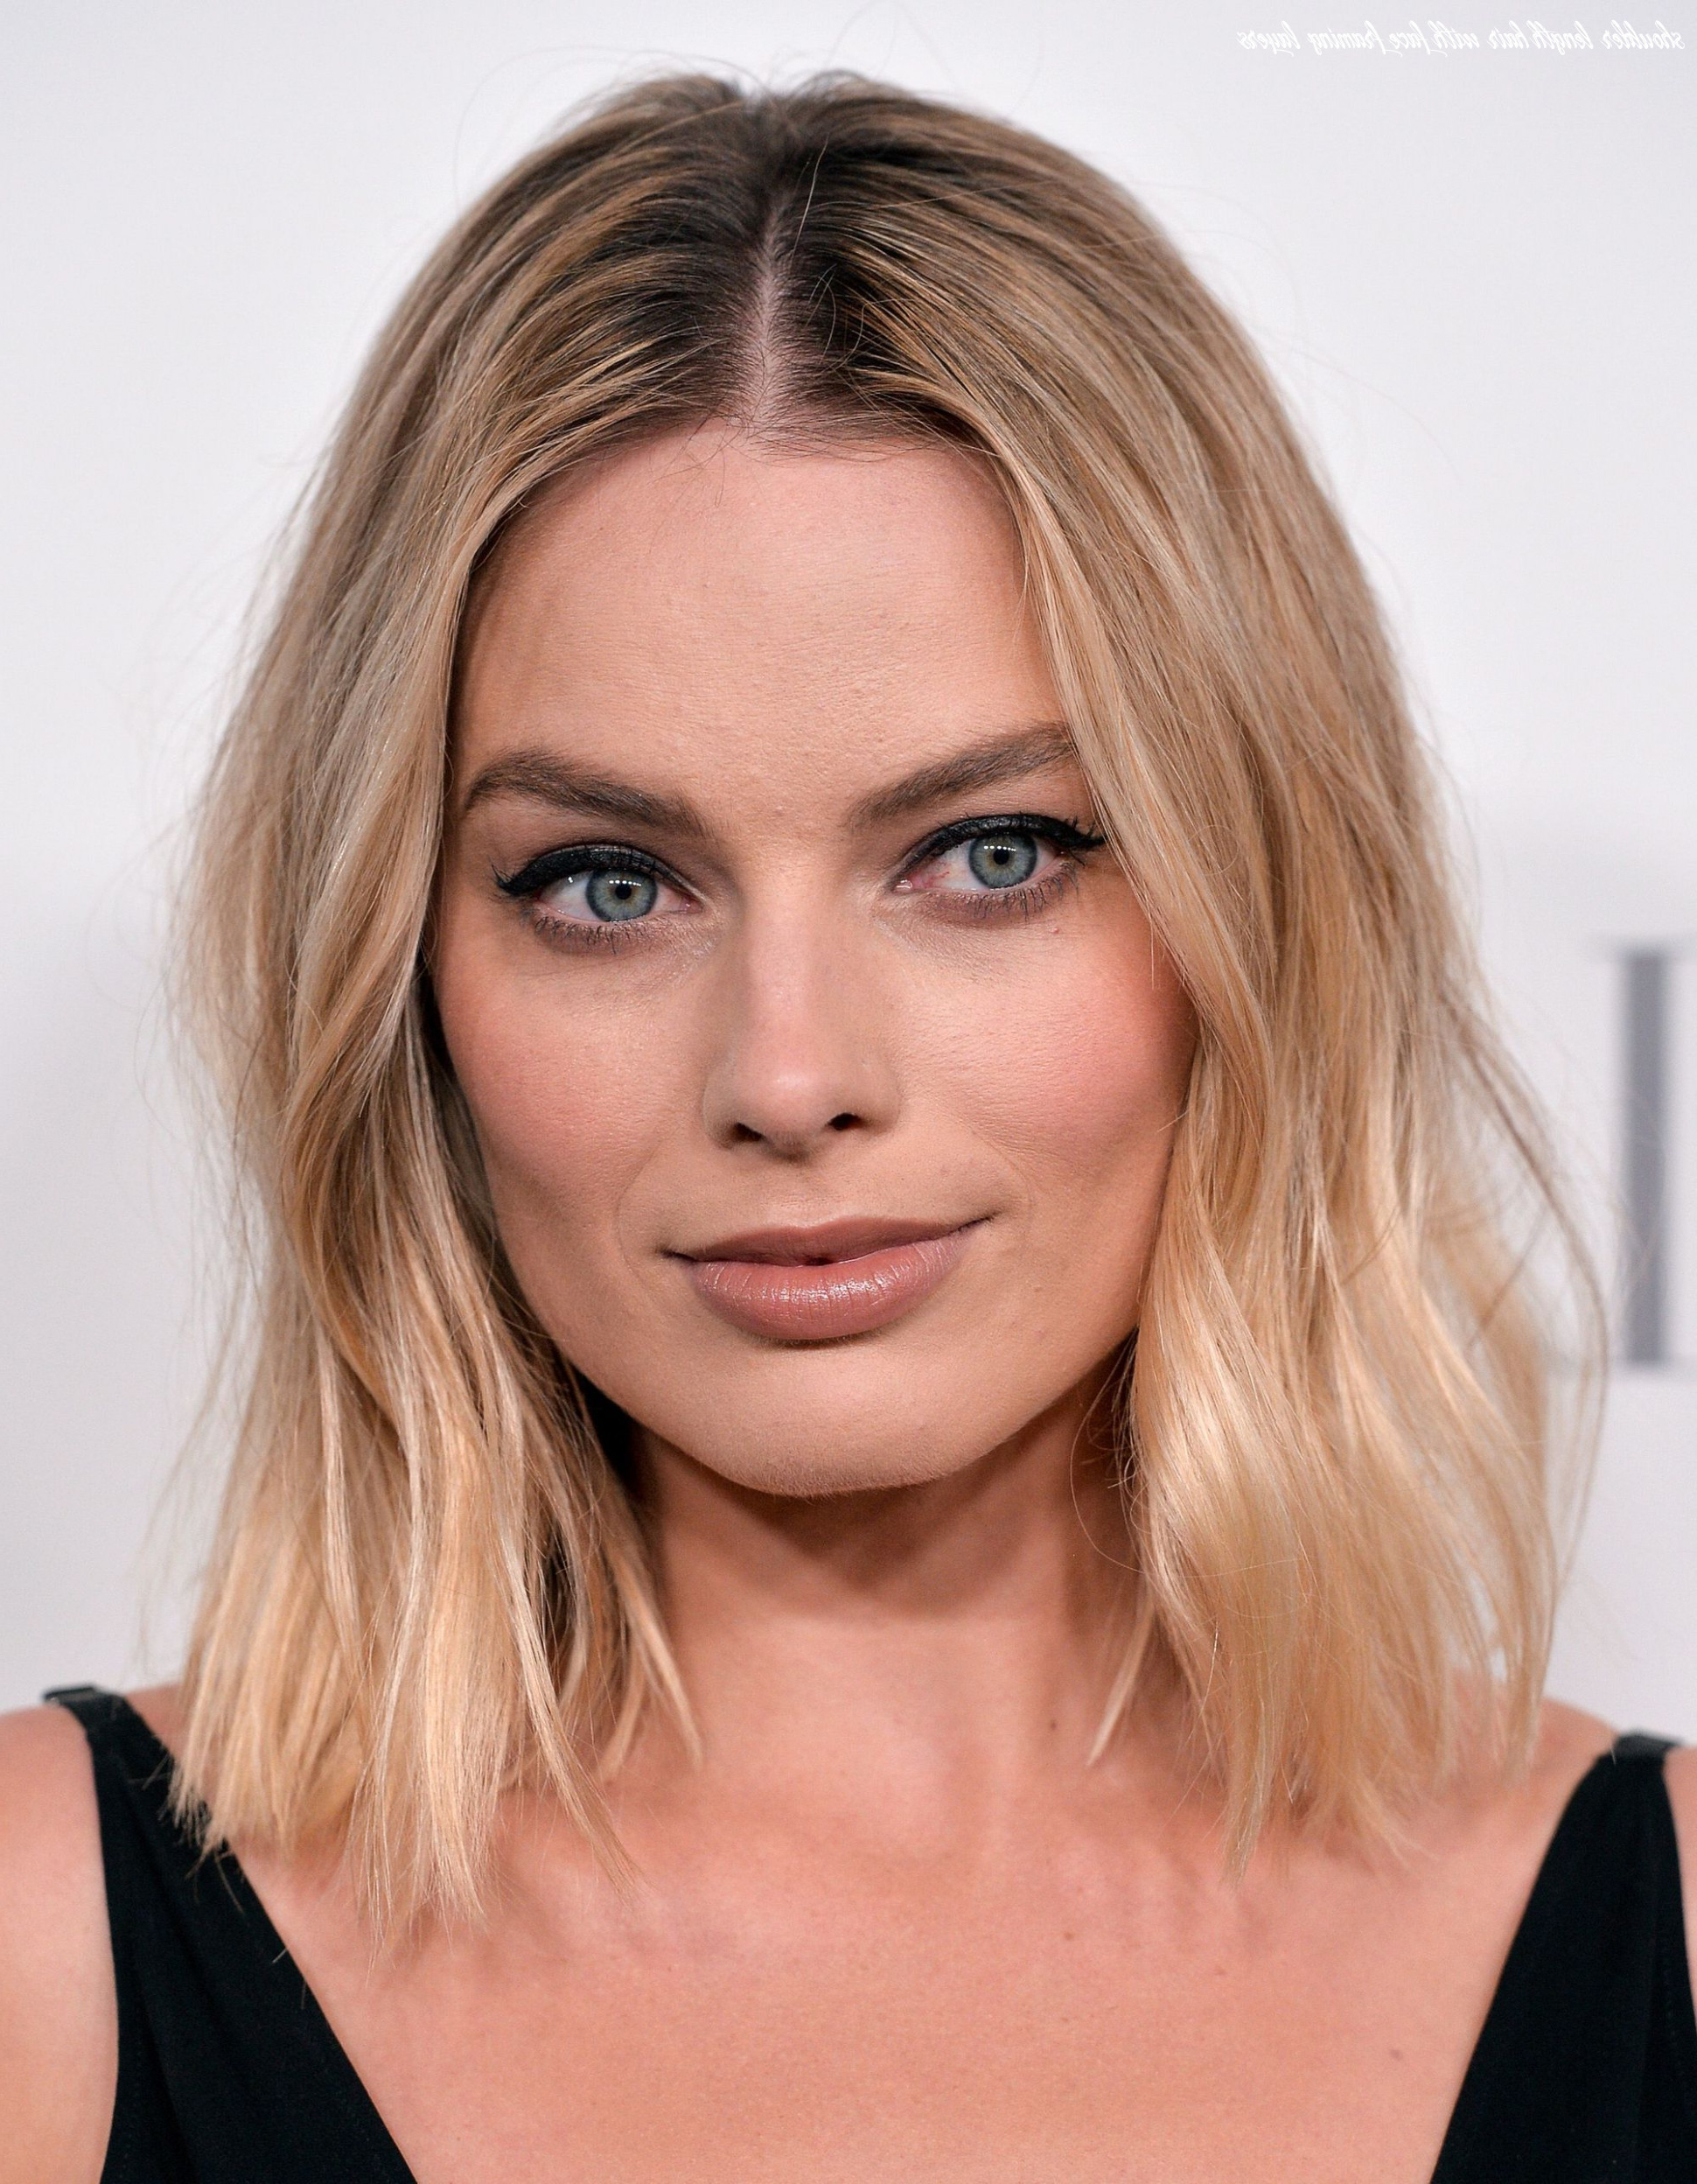 Most Up To Date Full Fringe And Face Framing Layers Hairstyles Intended For 10 Shoulder Length Hair With Face Framing Layers (View 2 of 20)